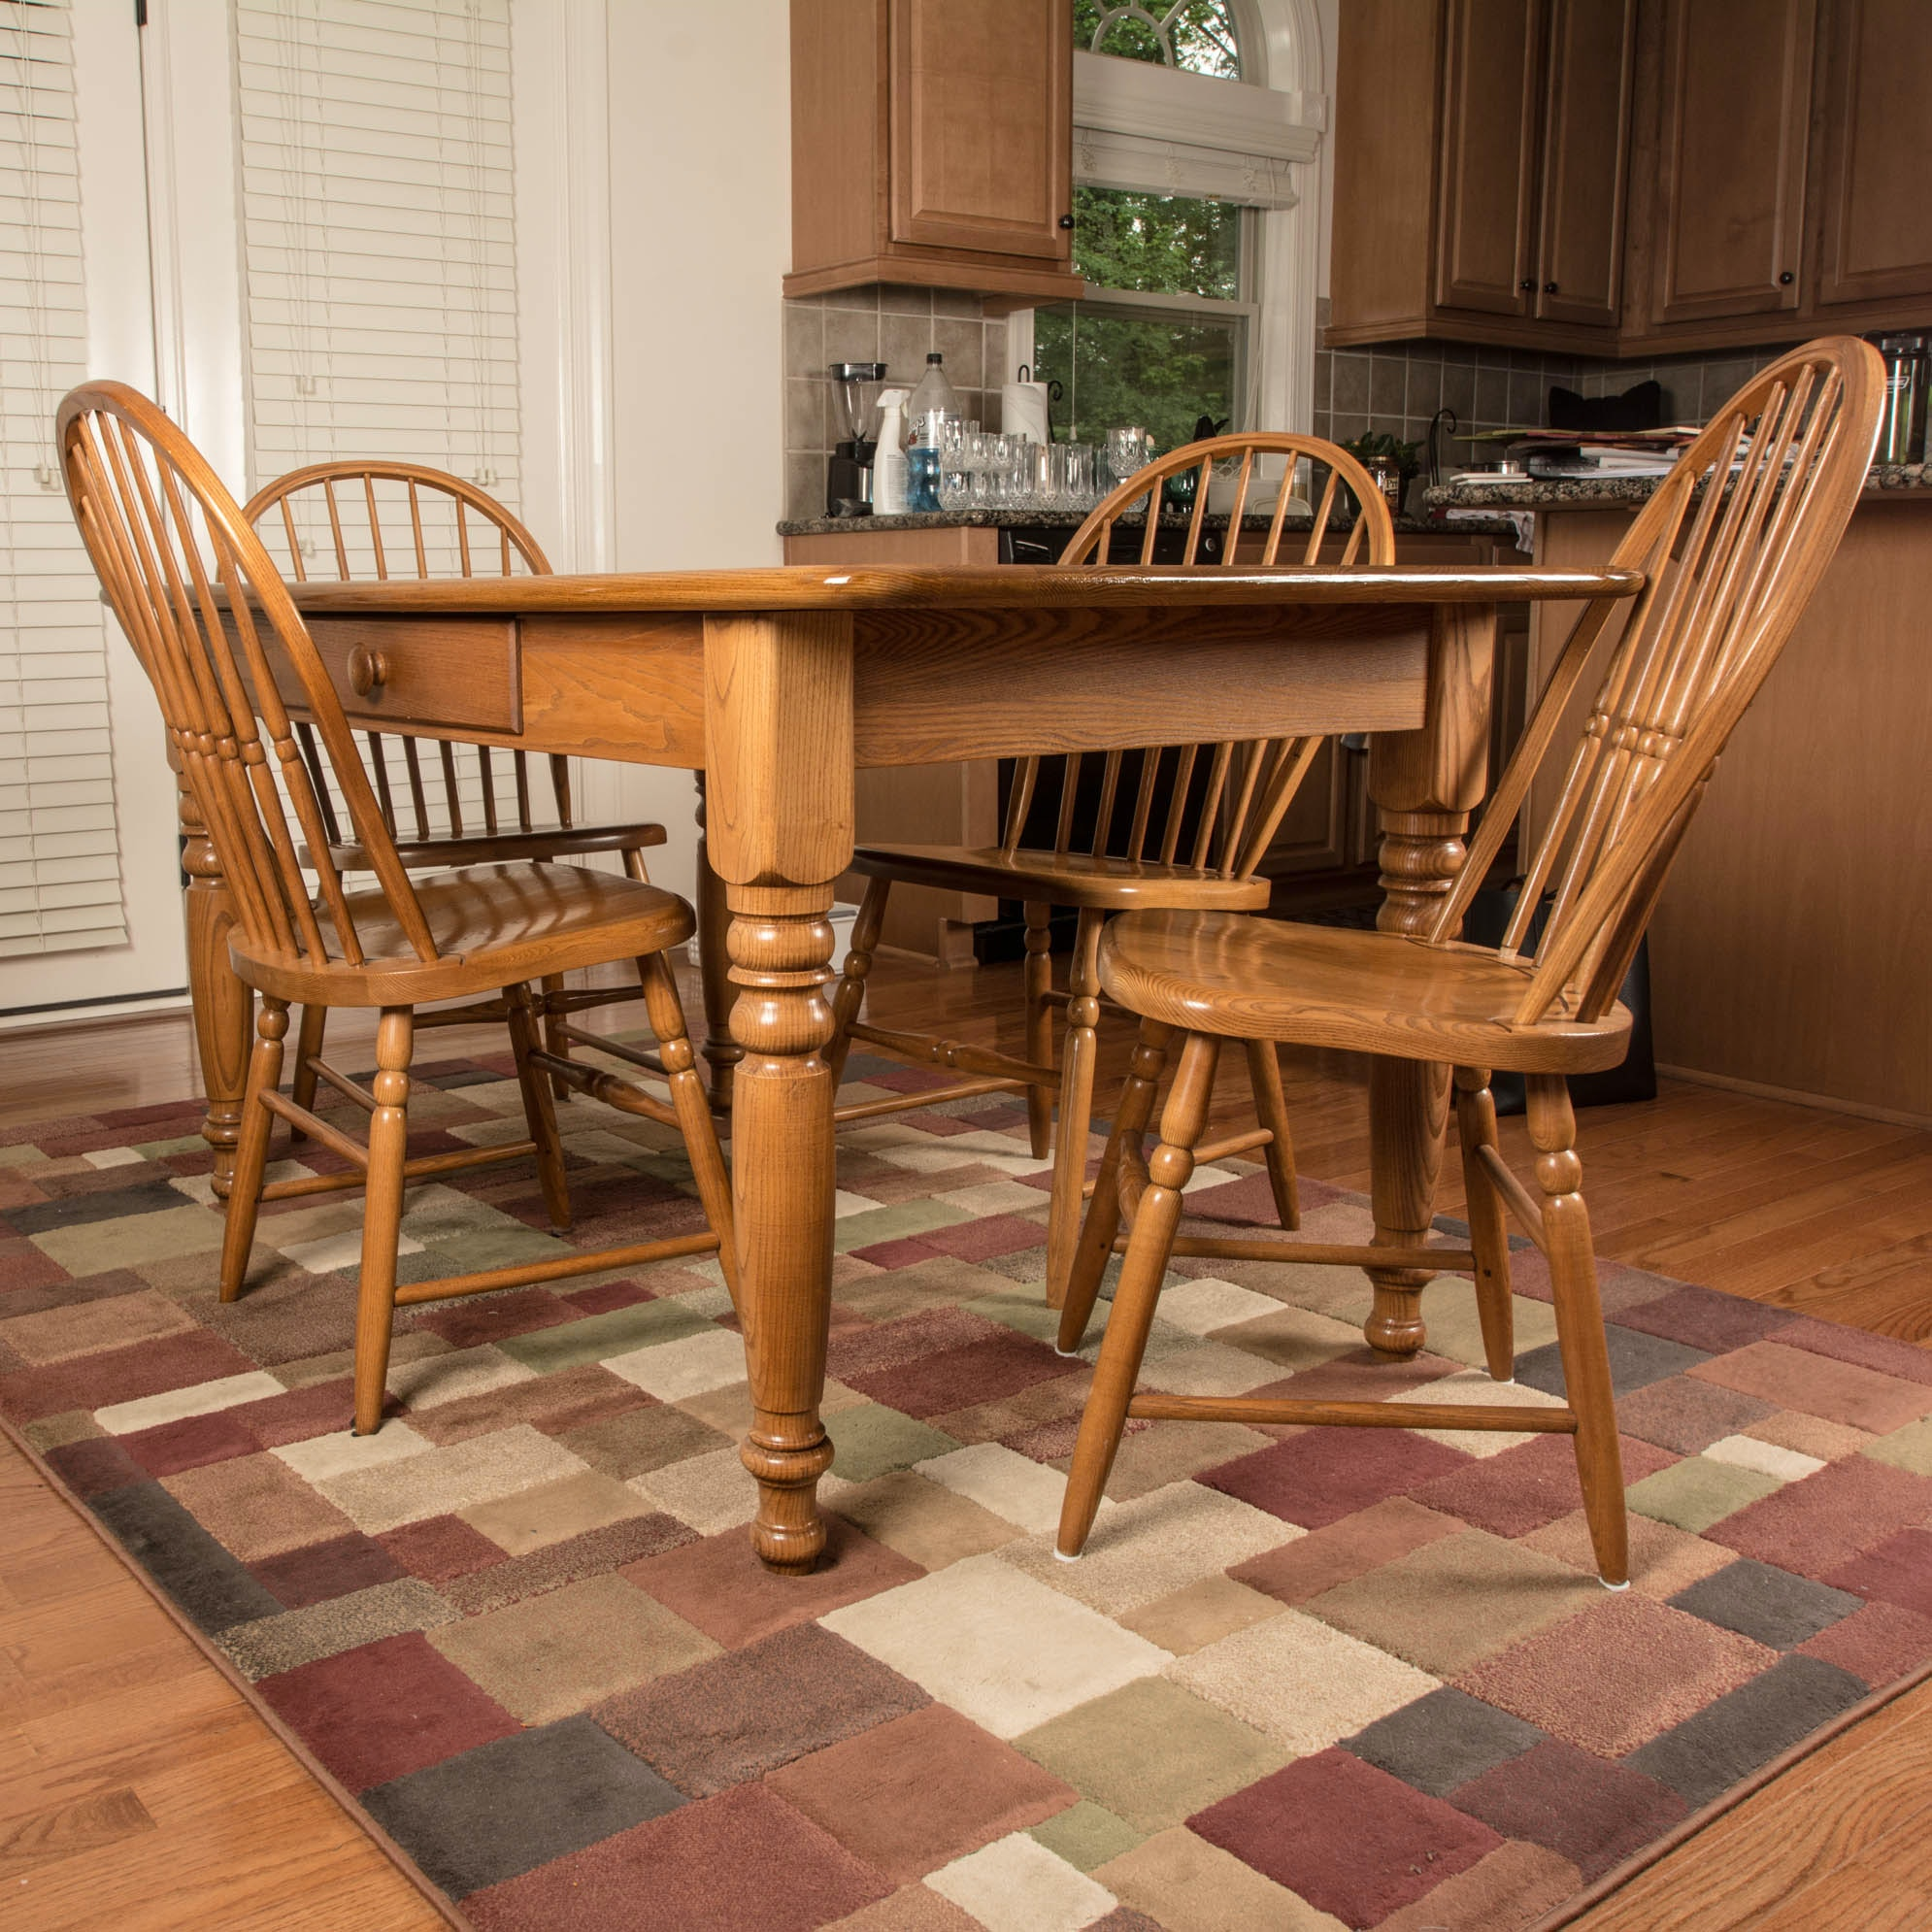 Dining Tables And Chairs: S. Bent & Bros. Oak Farmhouse Style Dining Room Table And